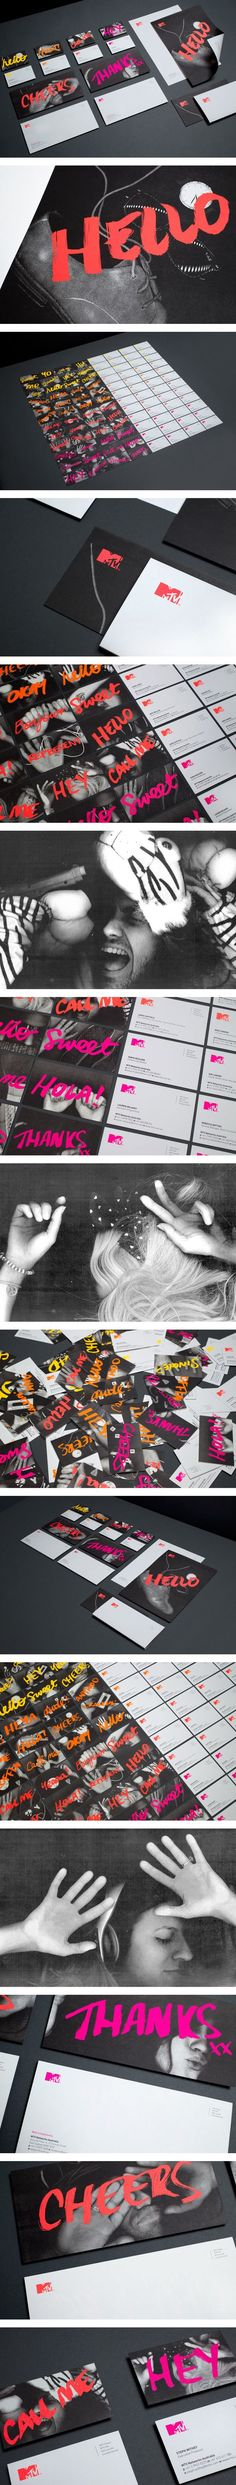 MTV Branding on Behance | Fivestar Branding – Design and Branding Agency & Inspiration Gallery